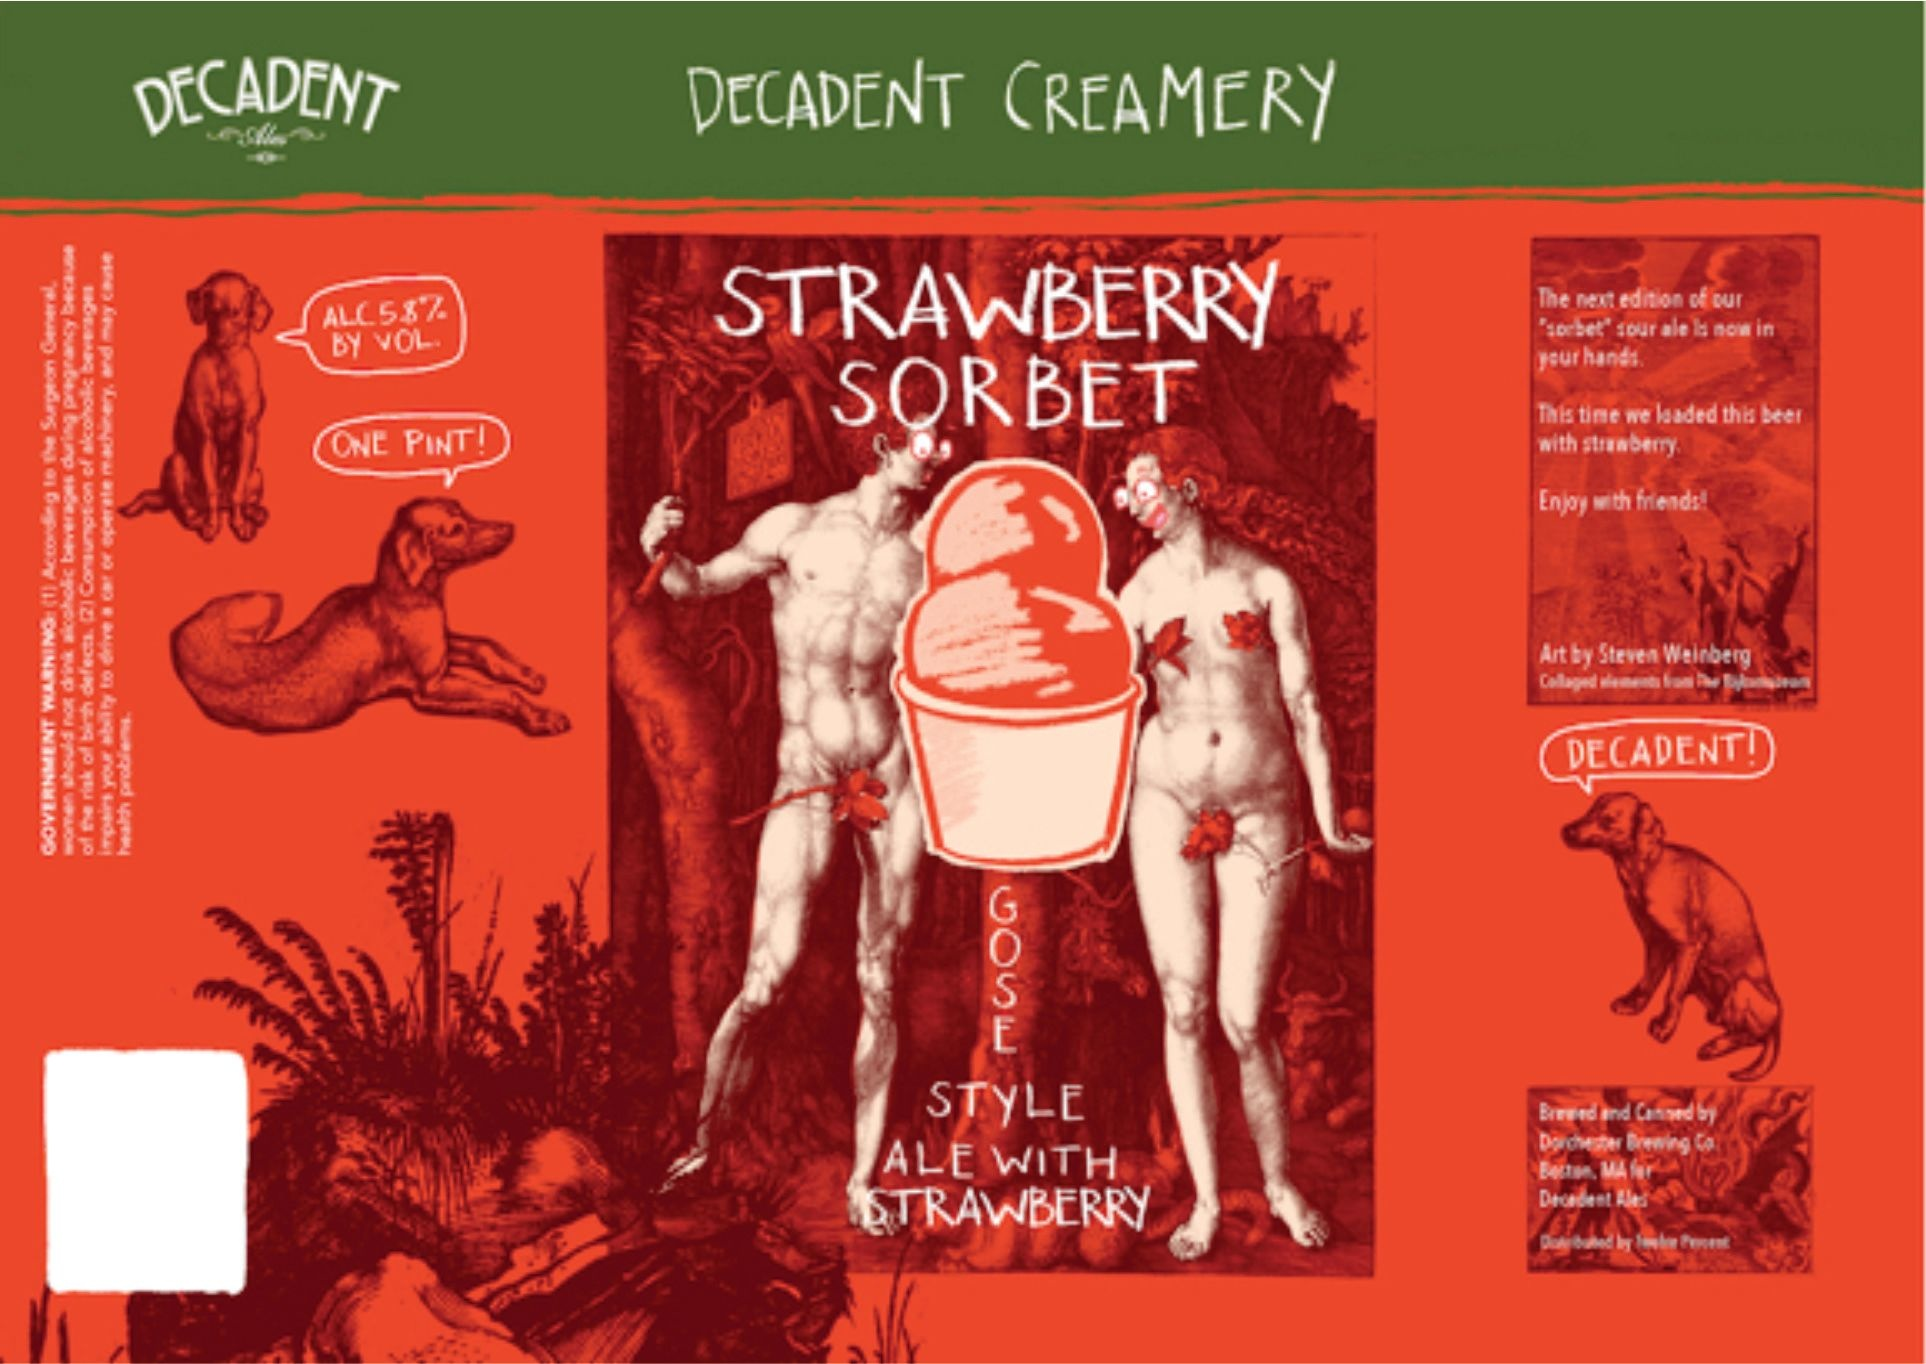 Decadent Ales DECADENT ALES STRAWBERRY SORBET GOSE 4 PK CANS